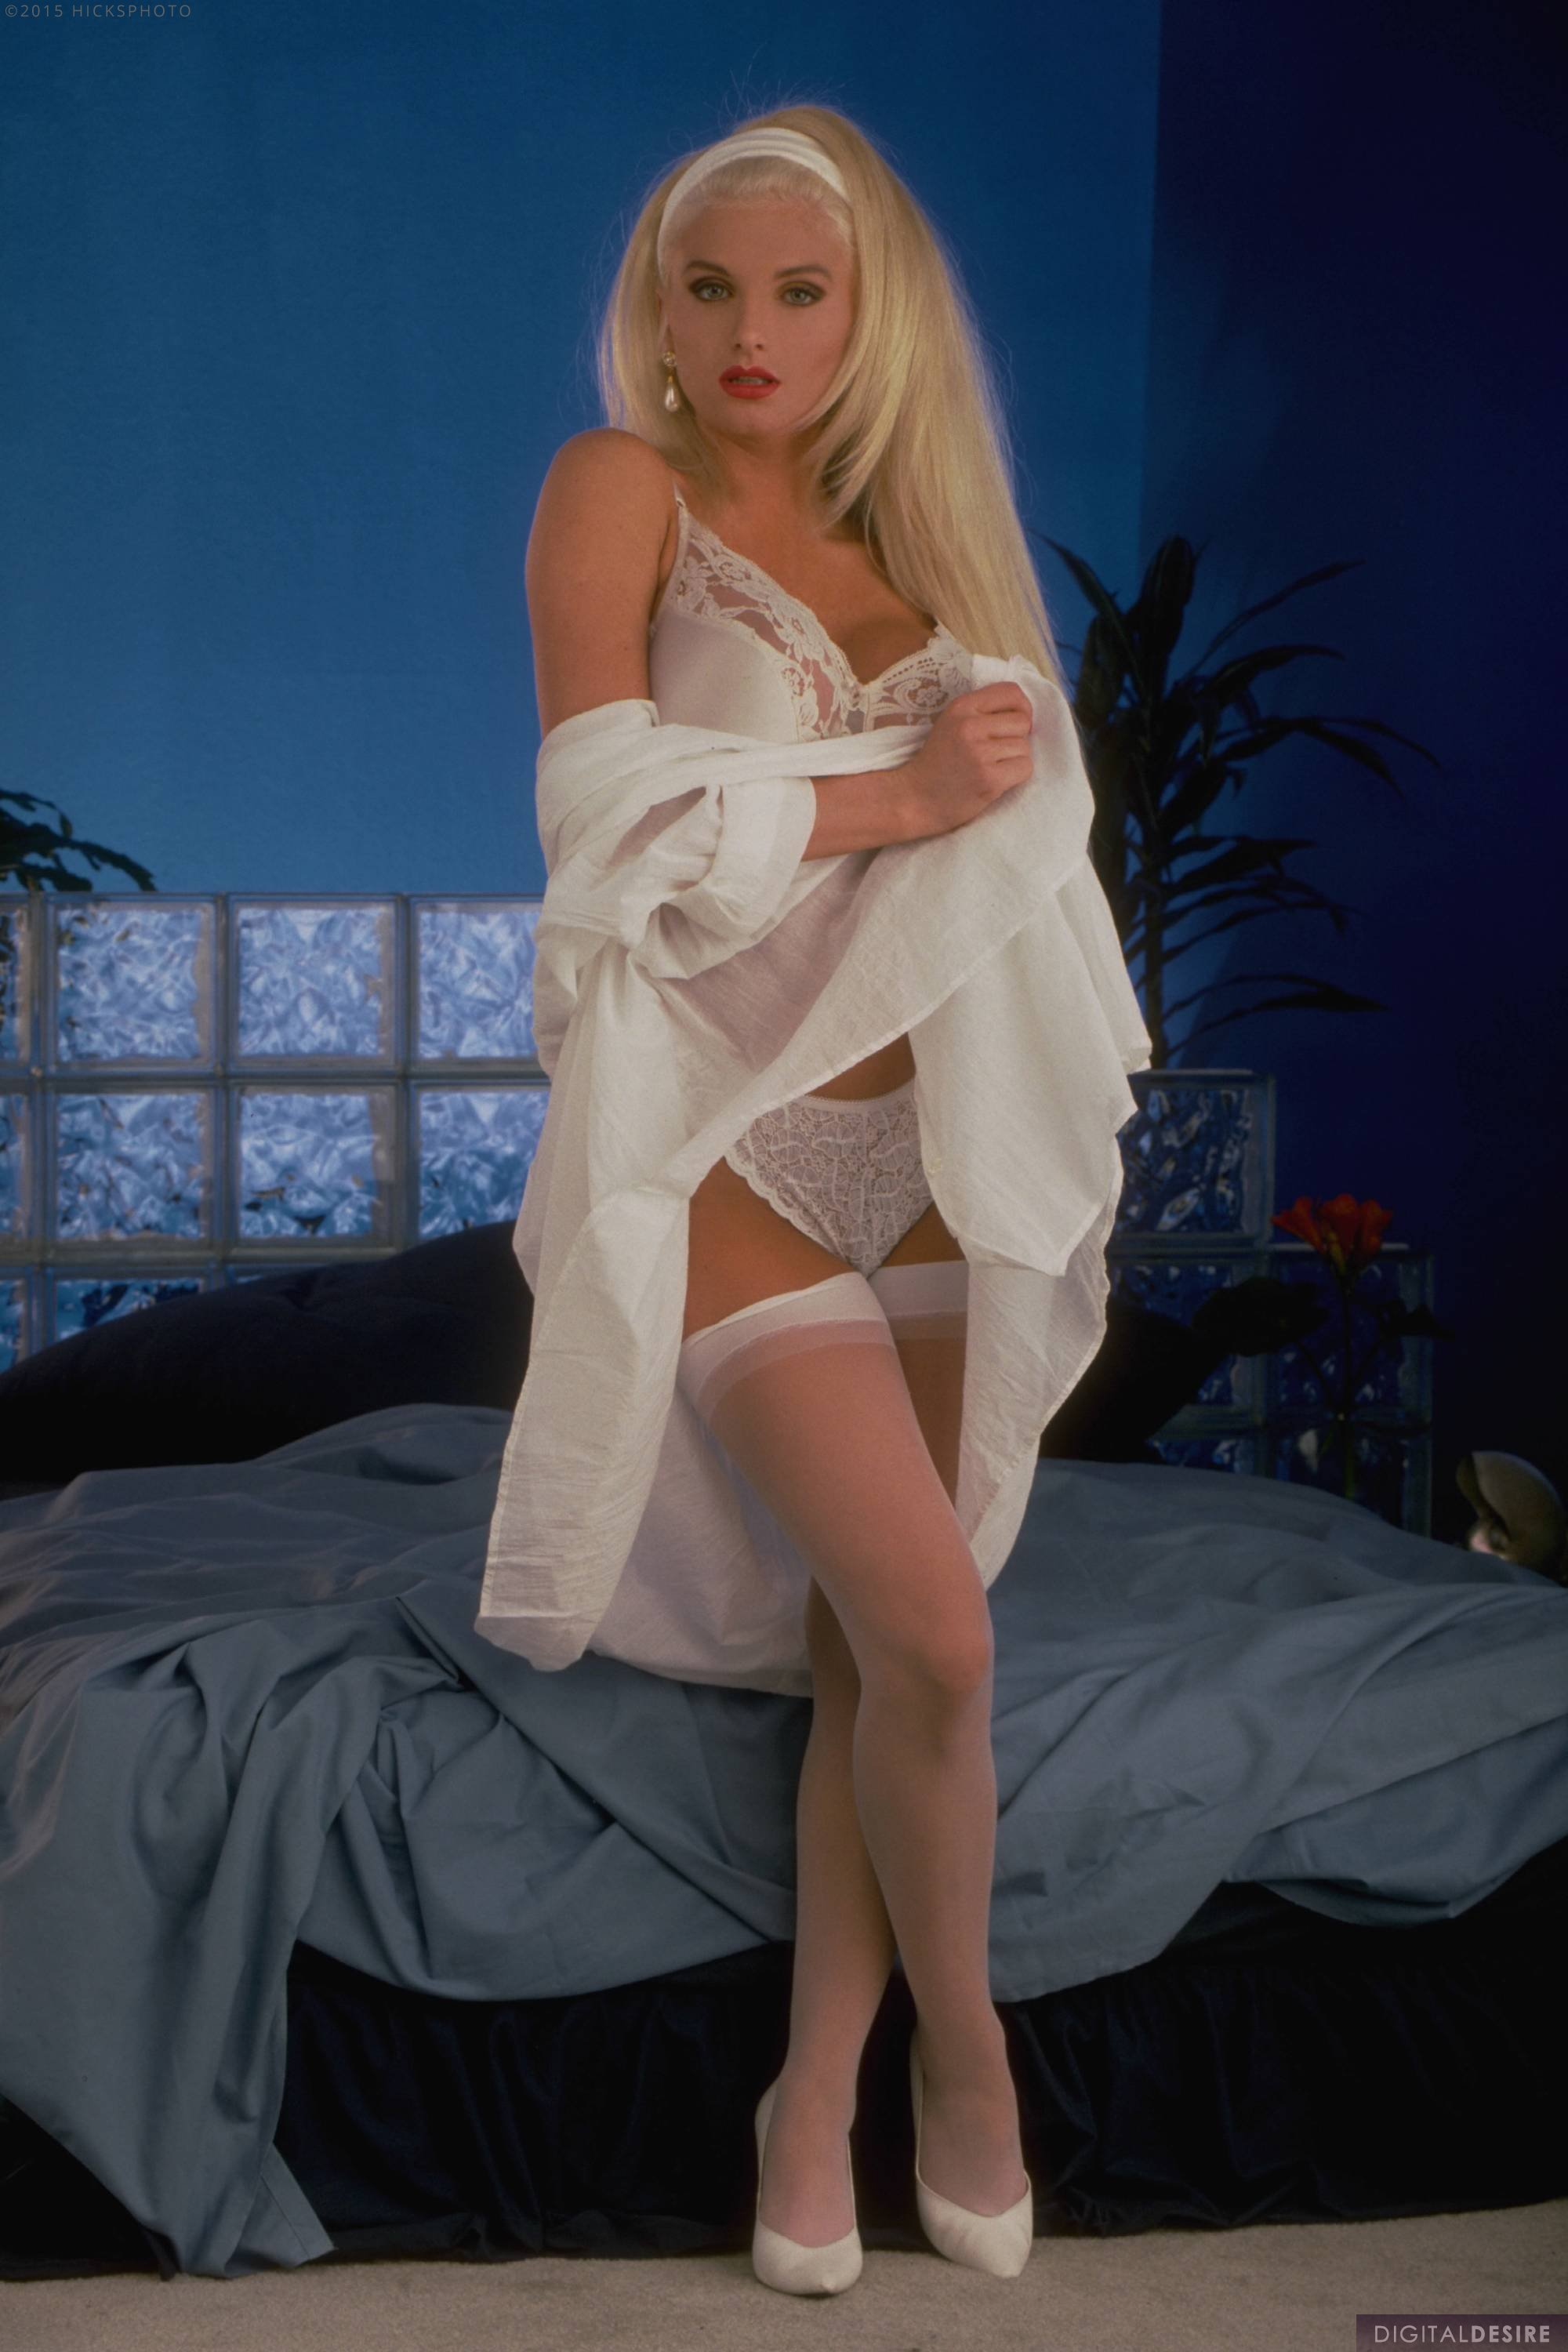 Young Taylor Wane in white stockings and heels posing on bed.